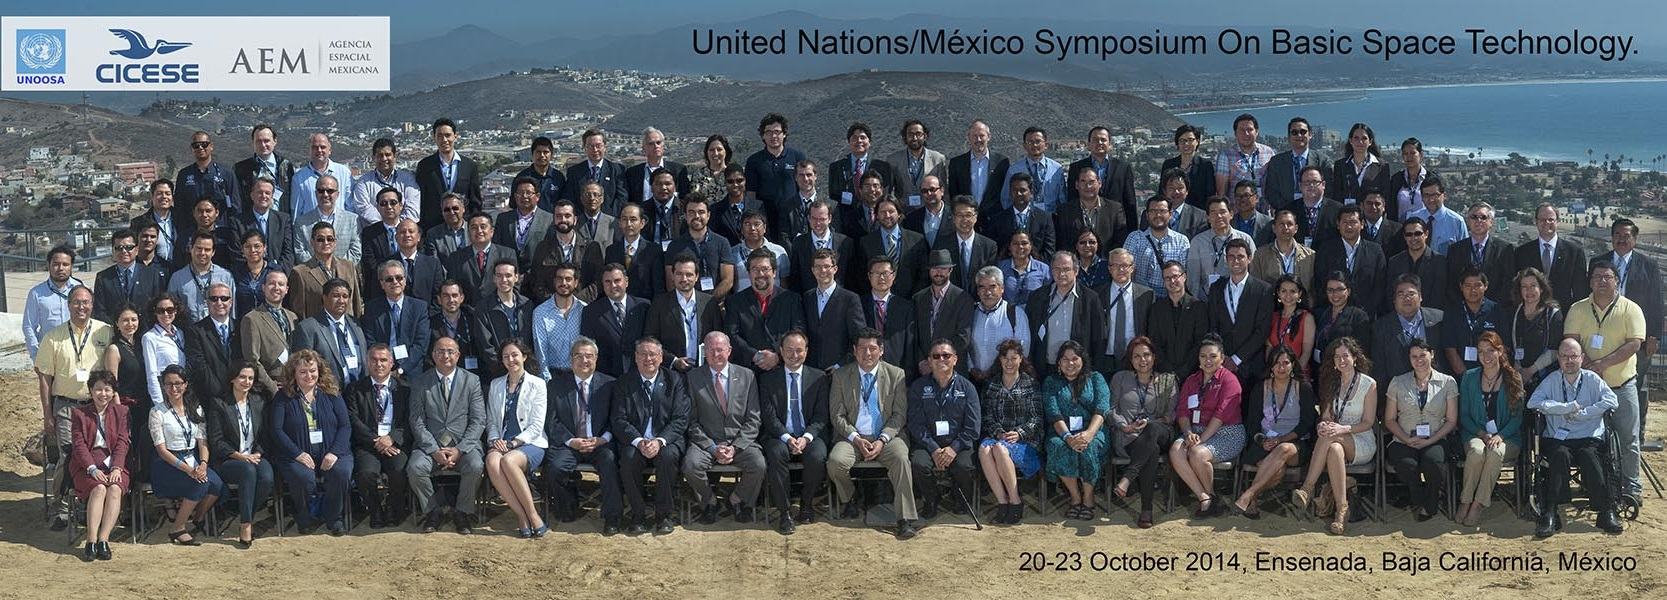 UN/Mexico Symposium Group Picture thumb